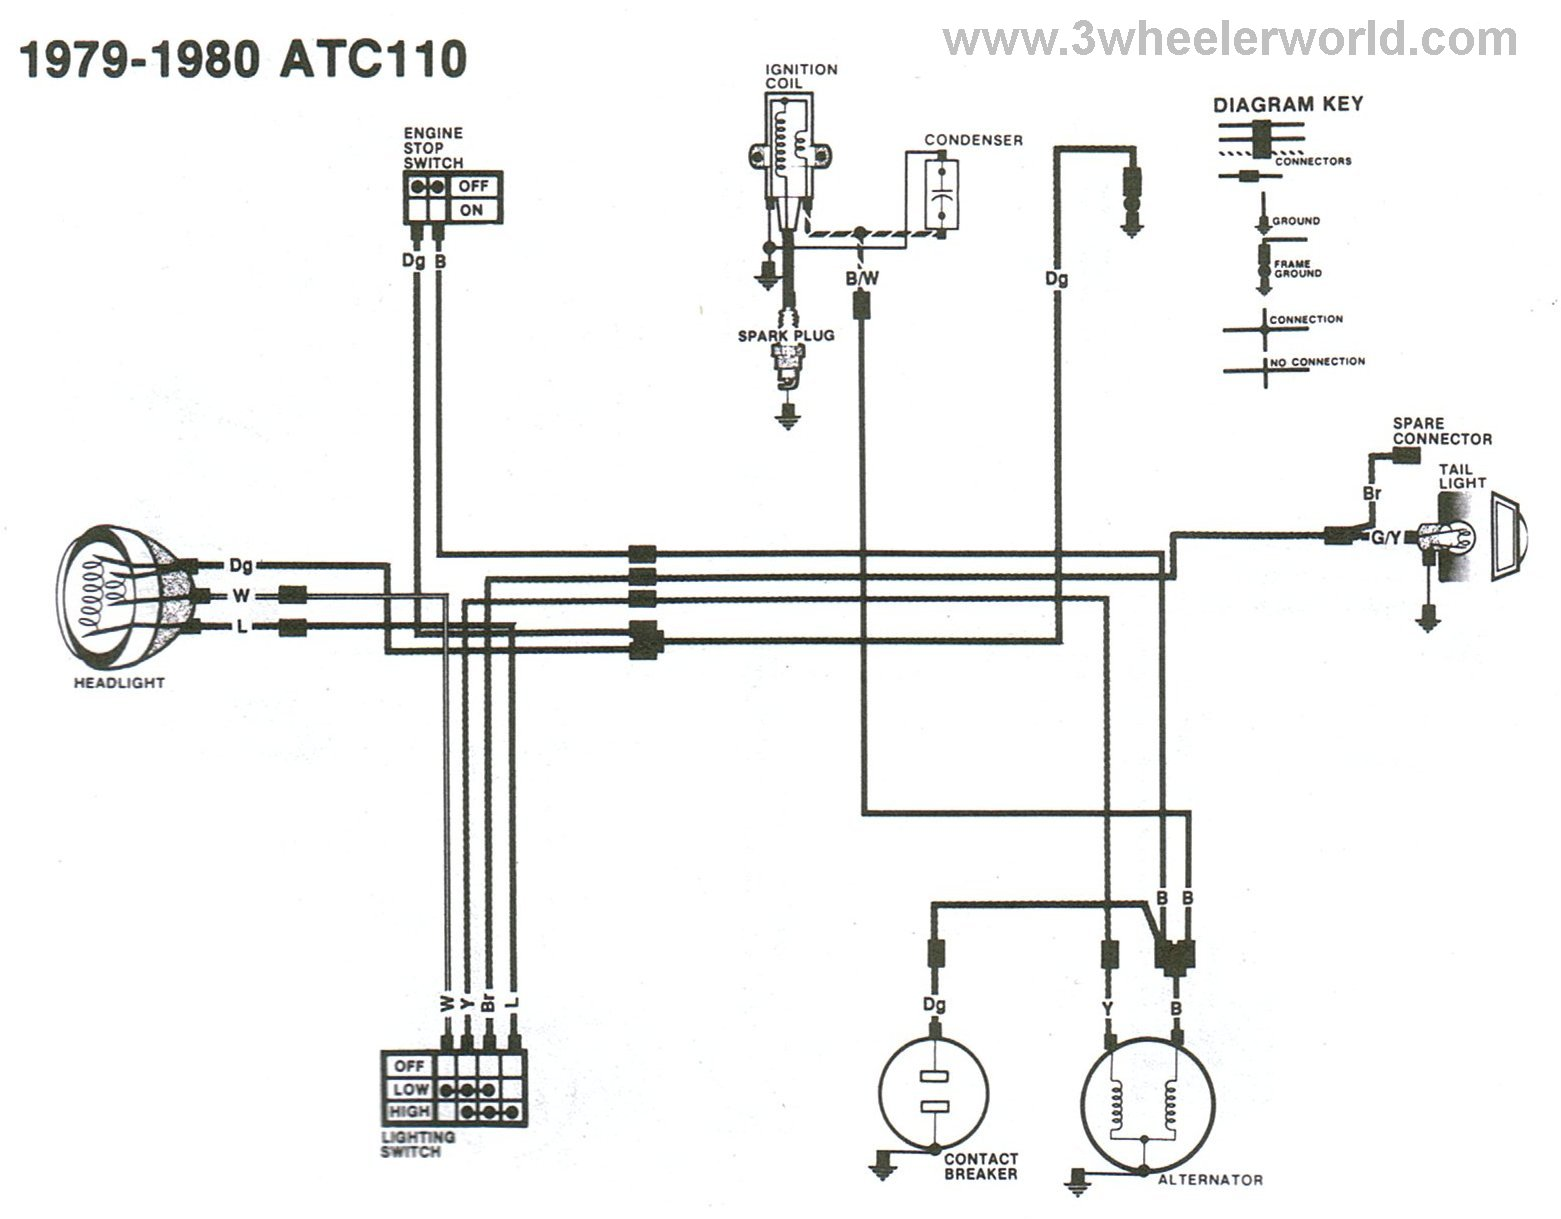 ATC110x79Thru80 3 wheeler world tech help honda wiring diagrams 1987 lt250r wiring diagram at n-0.co